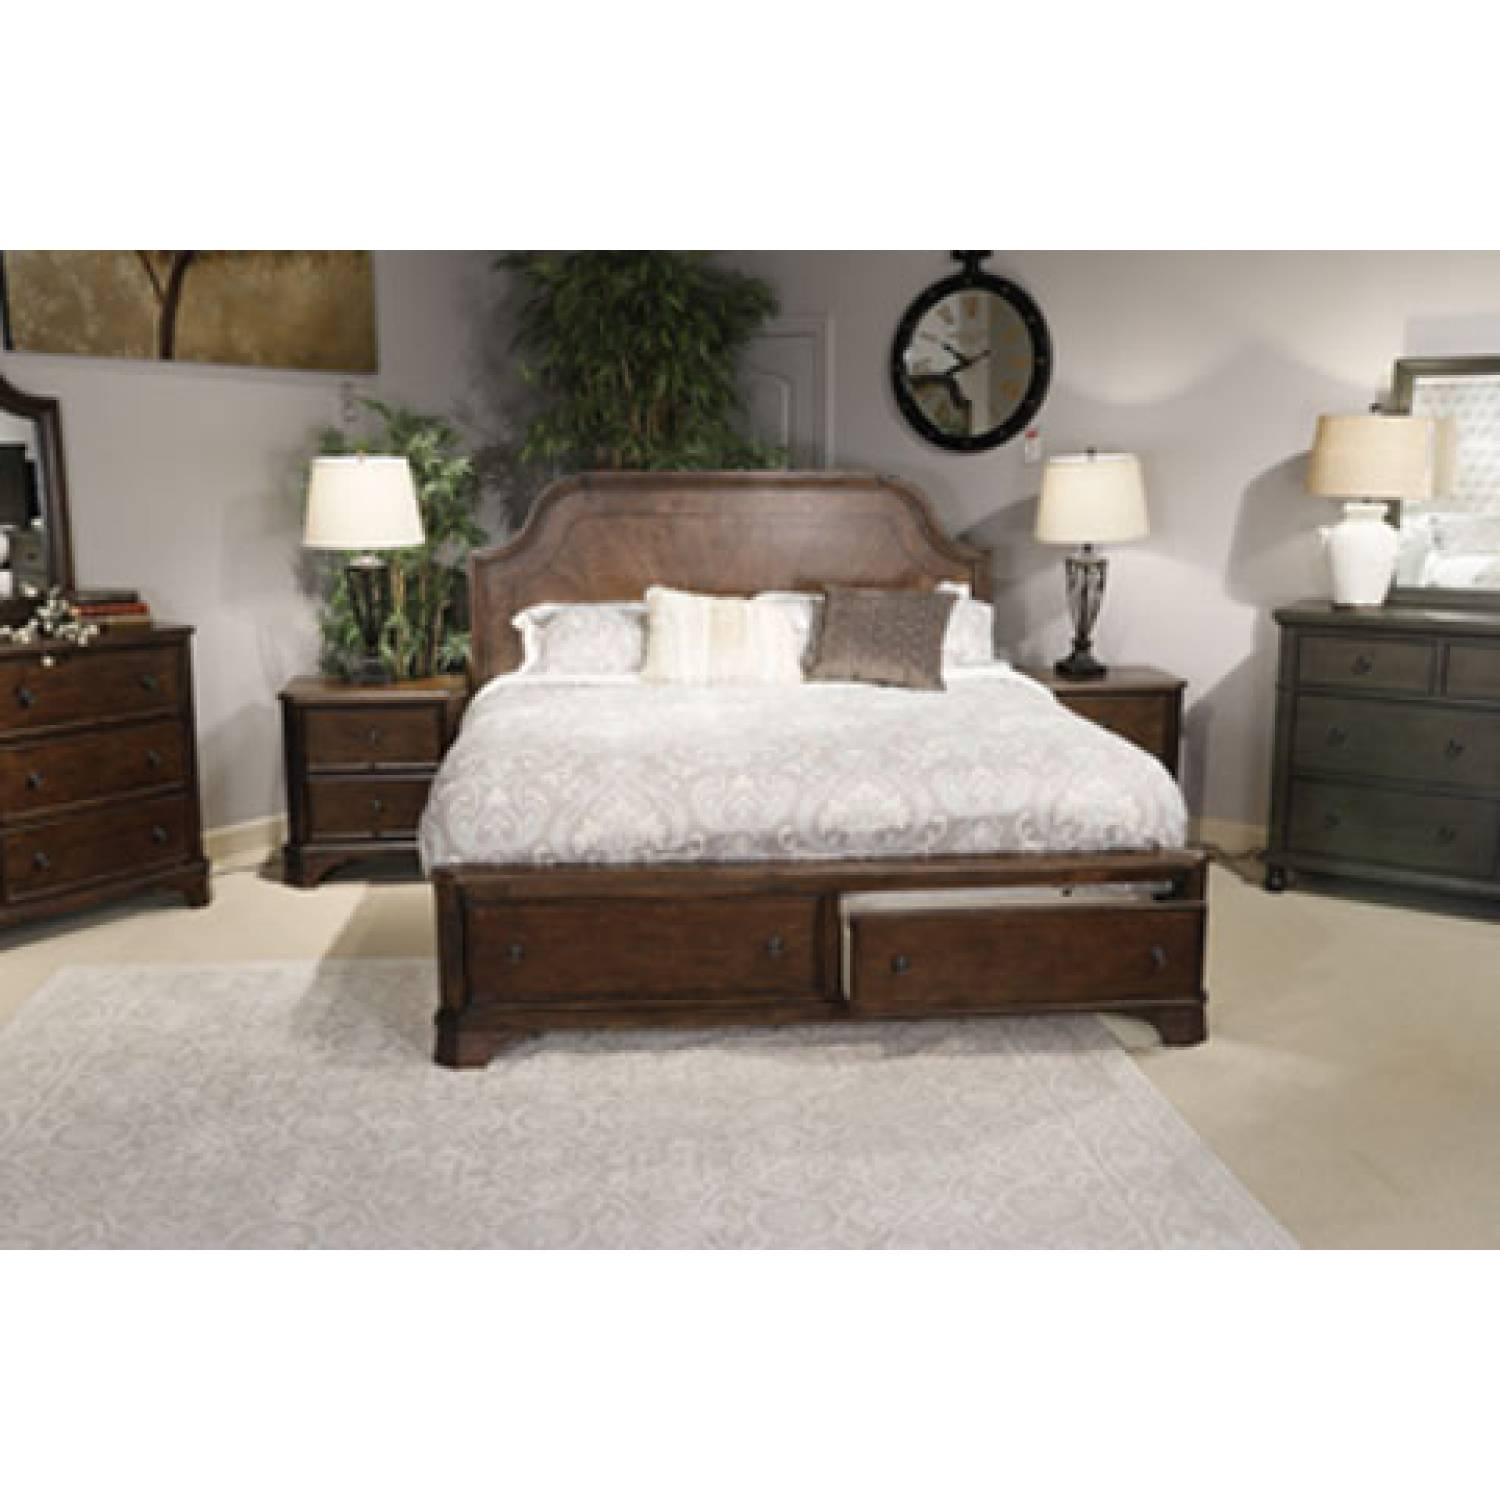 Ashley Furniture Orange County Ca: B517 Adinton Queen Panel Bed